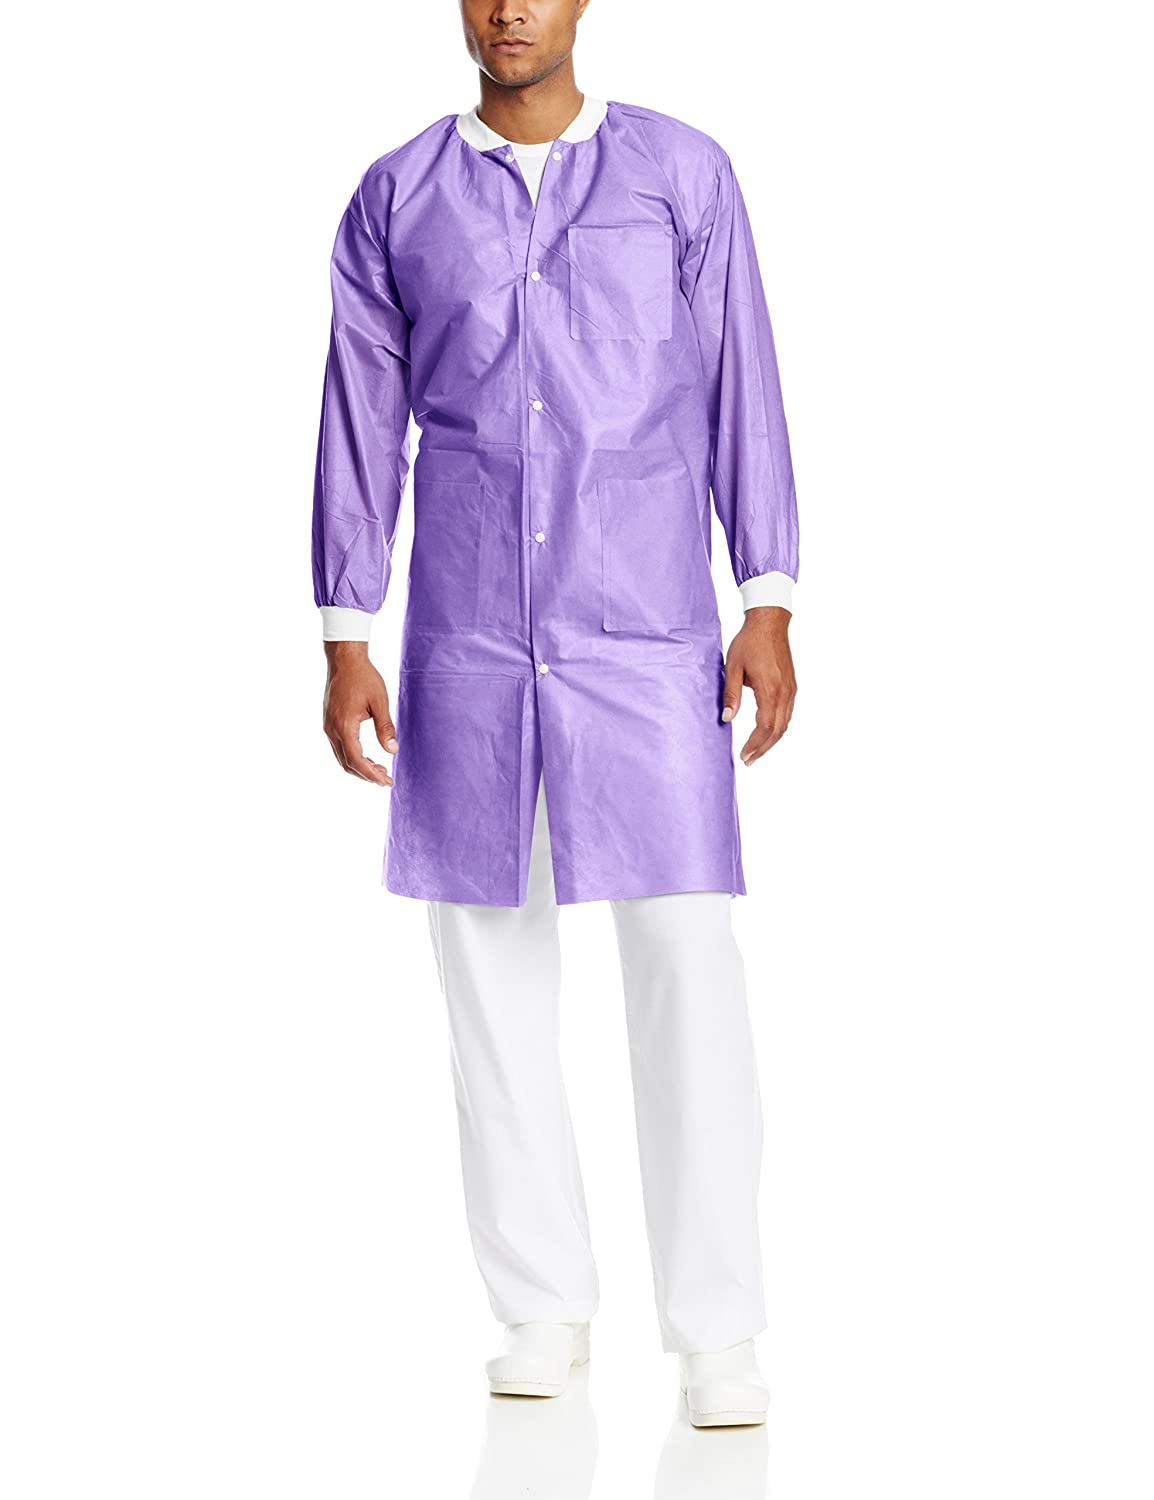 ValuMax 3660PP5XL Extra-Safe Wrinkle-Free Dispos Max 47% OFF Noble New product type Looking